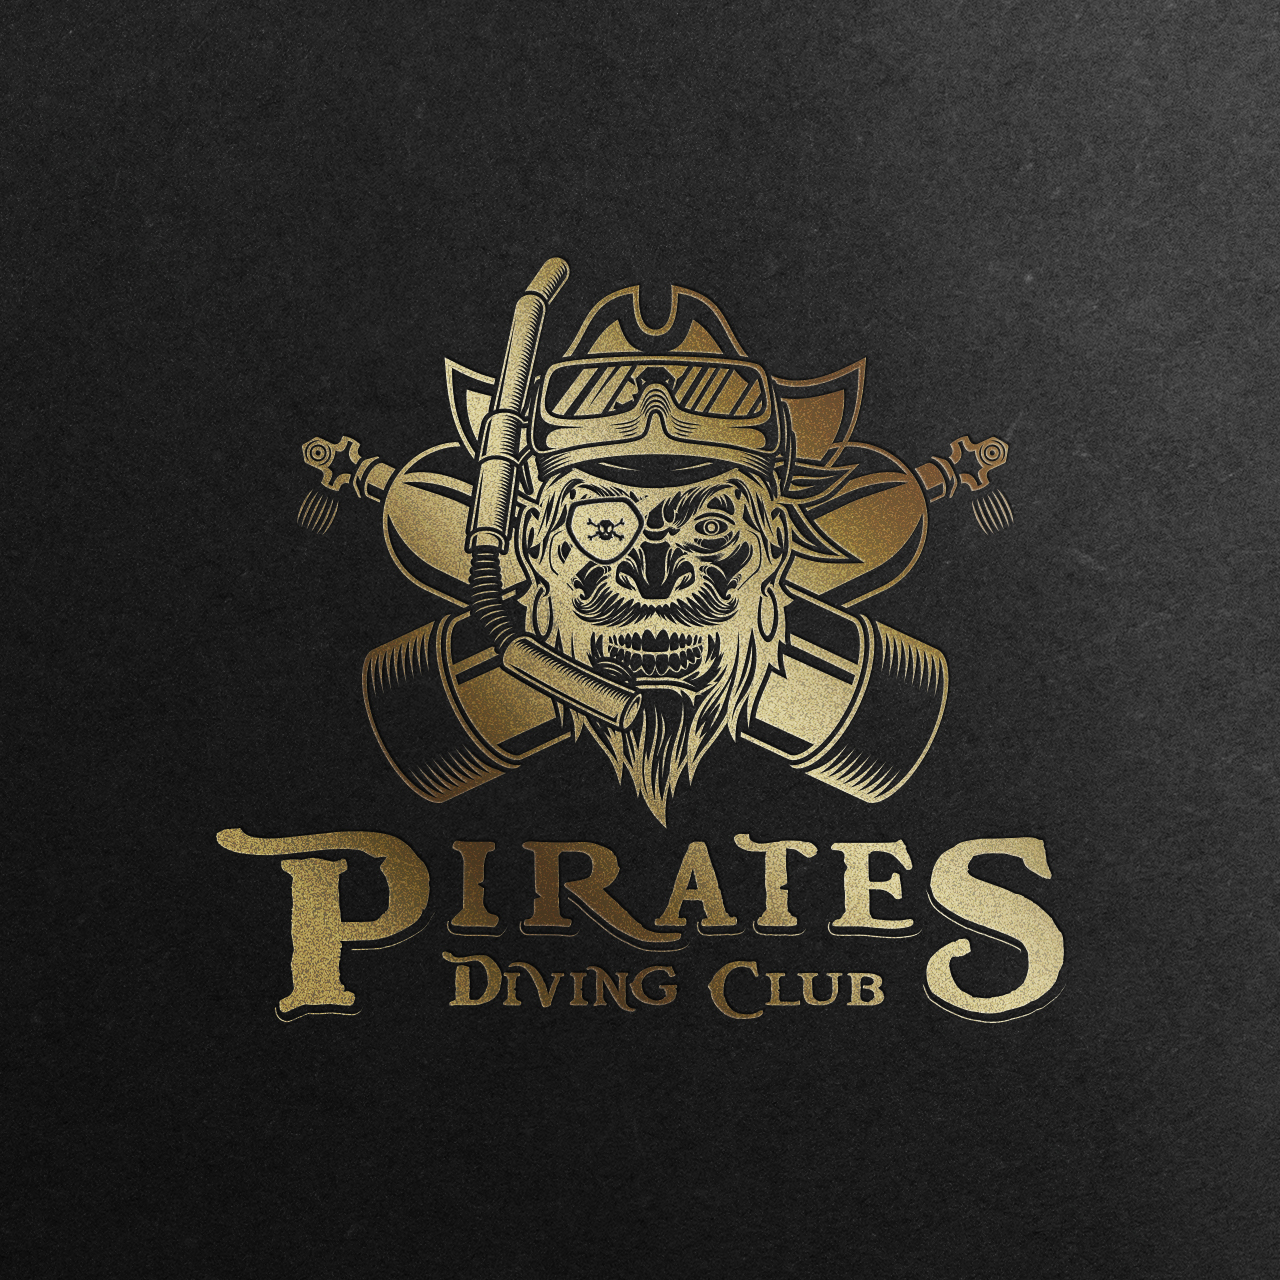 pirates diving club-logo-mockup-gold